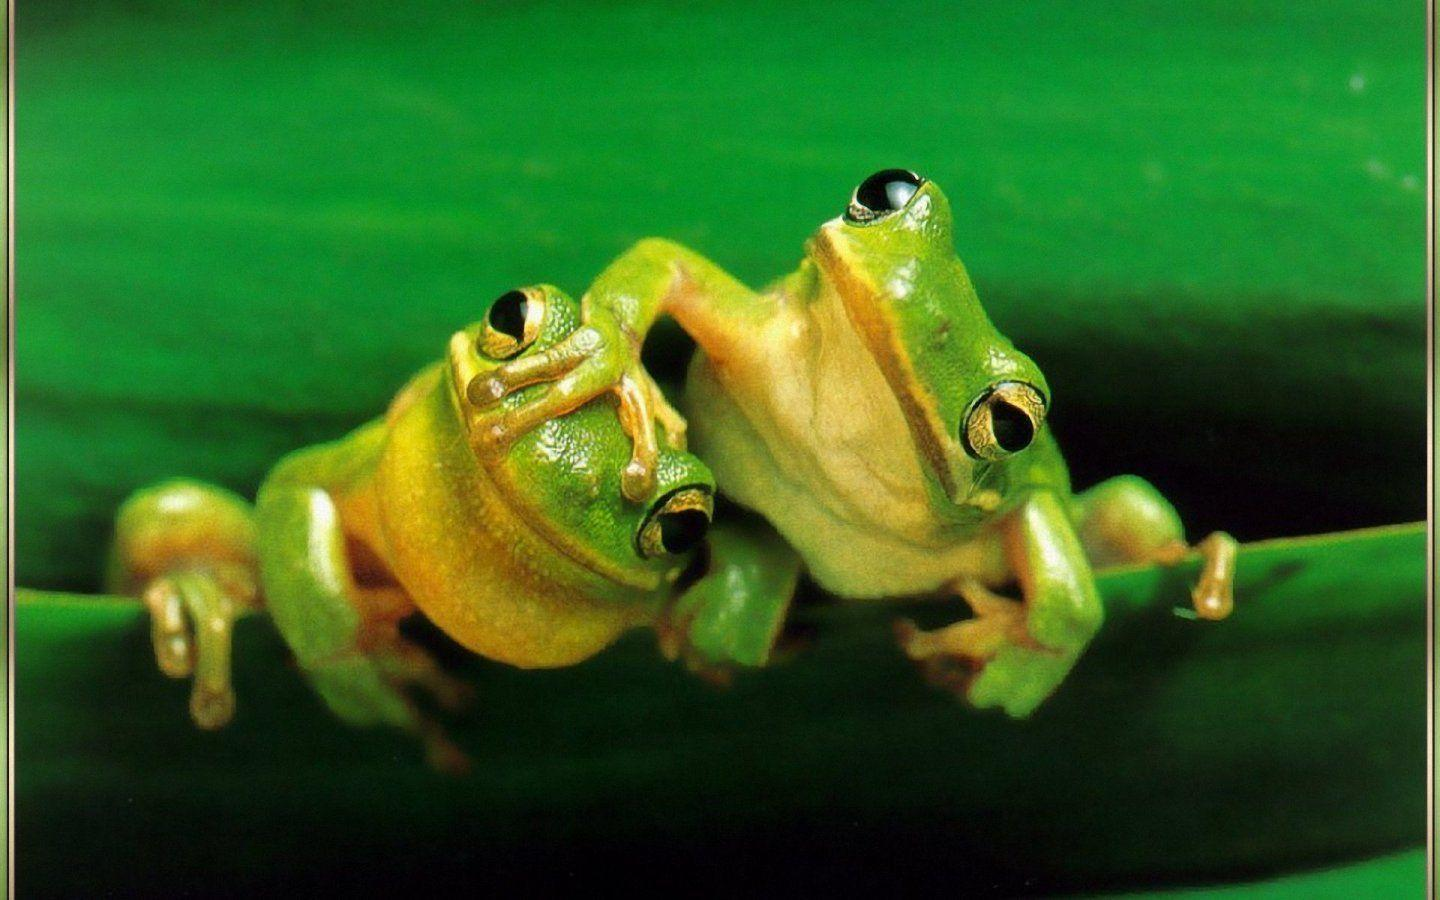 Frog In Water Wallpapers Image 129 Wallpapers